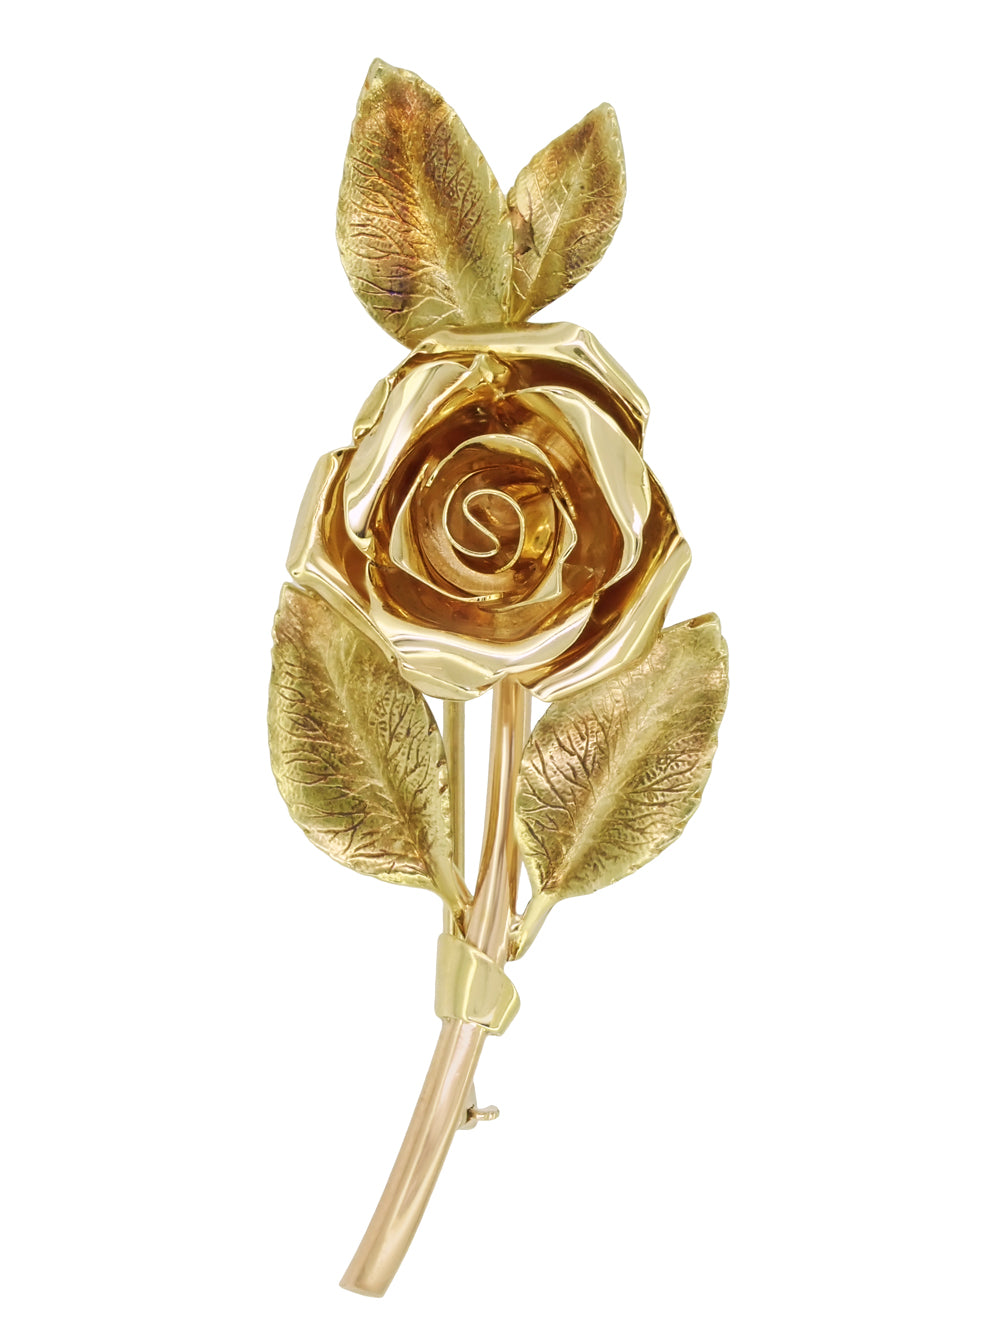 5d7d677a06c1f Vintage Tiffany Mid-Century Rose Pin Brooch in 14 Karat Yellow and Rose Gold